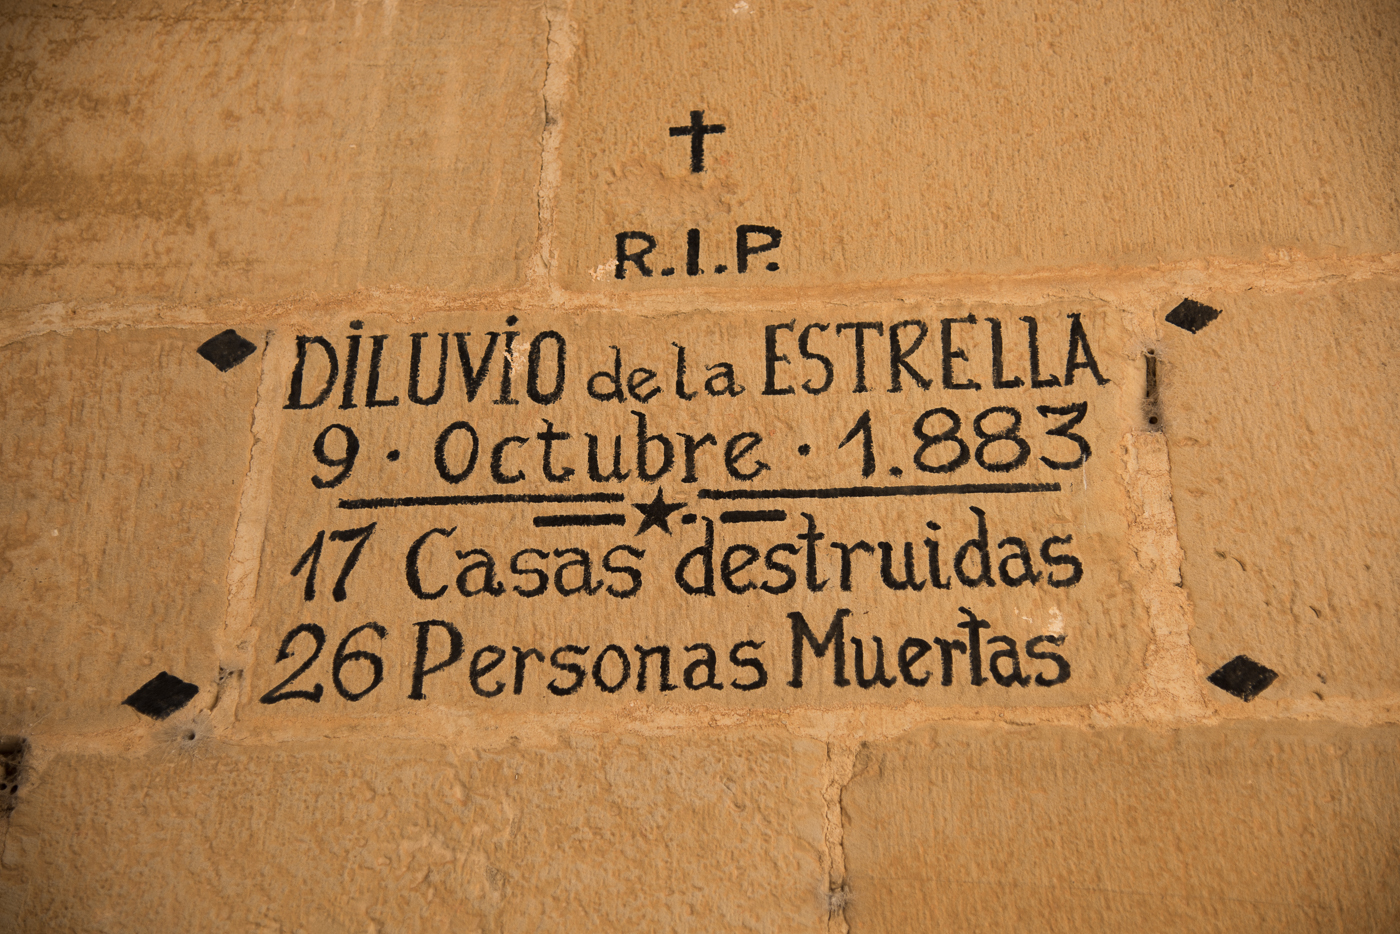 In memory of those who died in La Estrella's flood